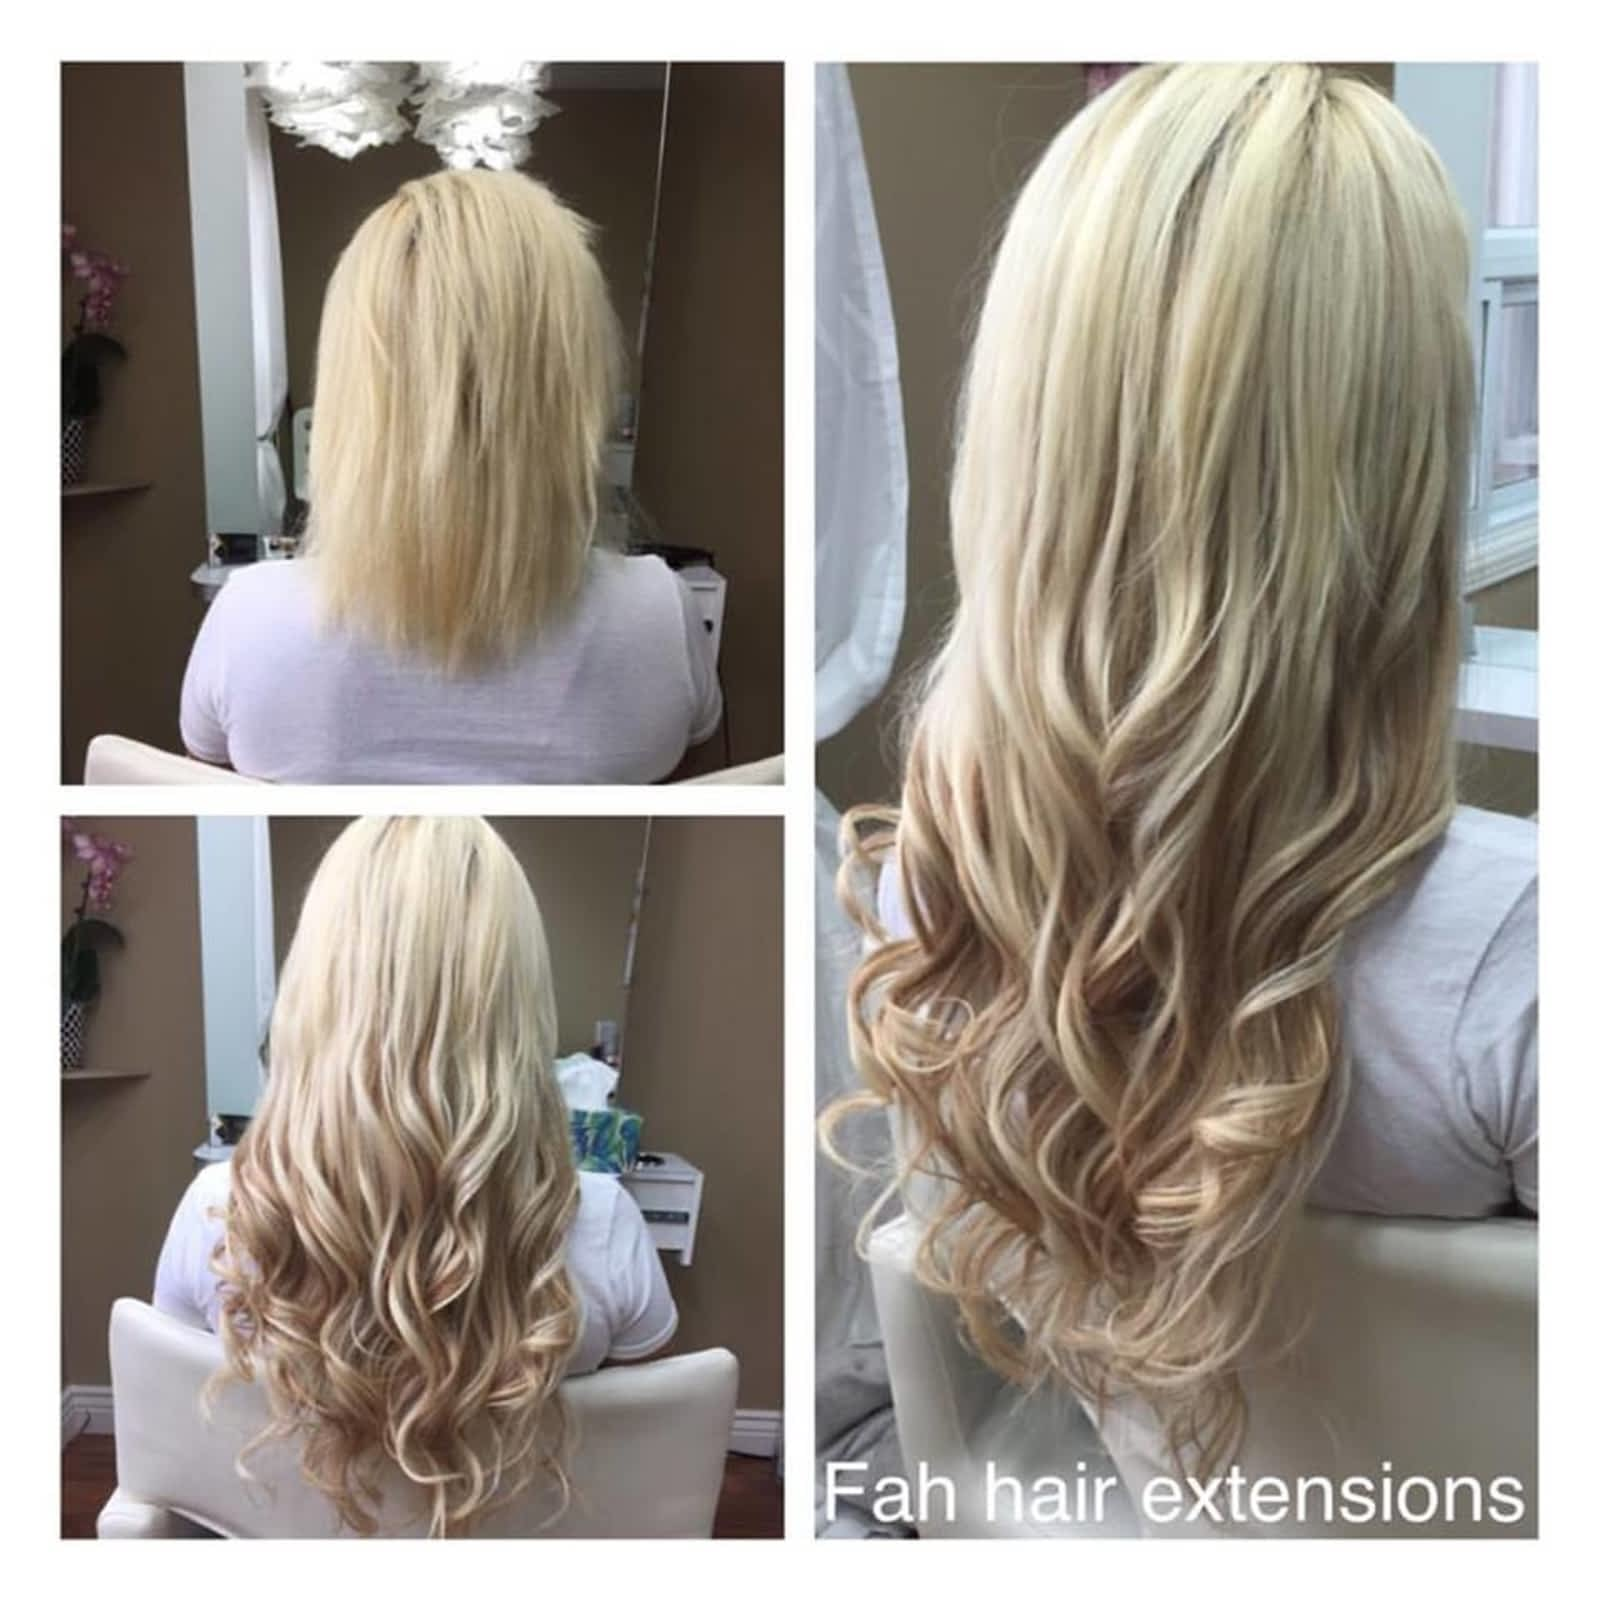 Fah Hair Extensions Opening Hours 5 9833 Keele St Maple On